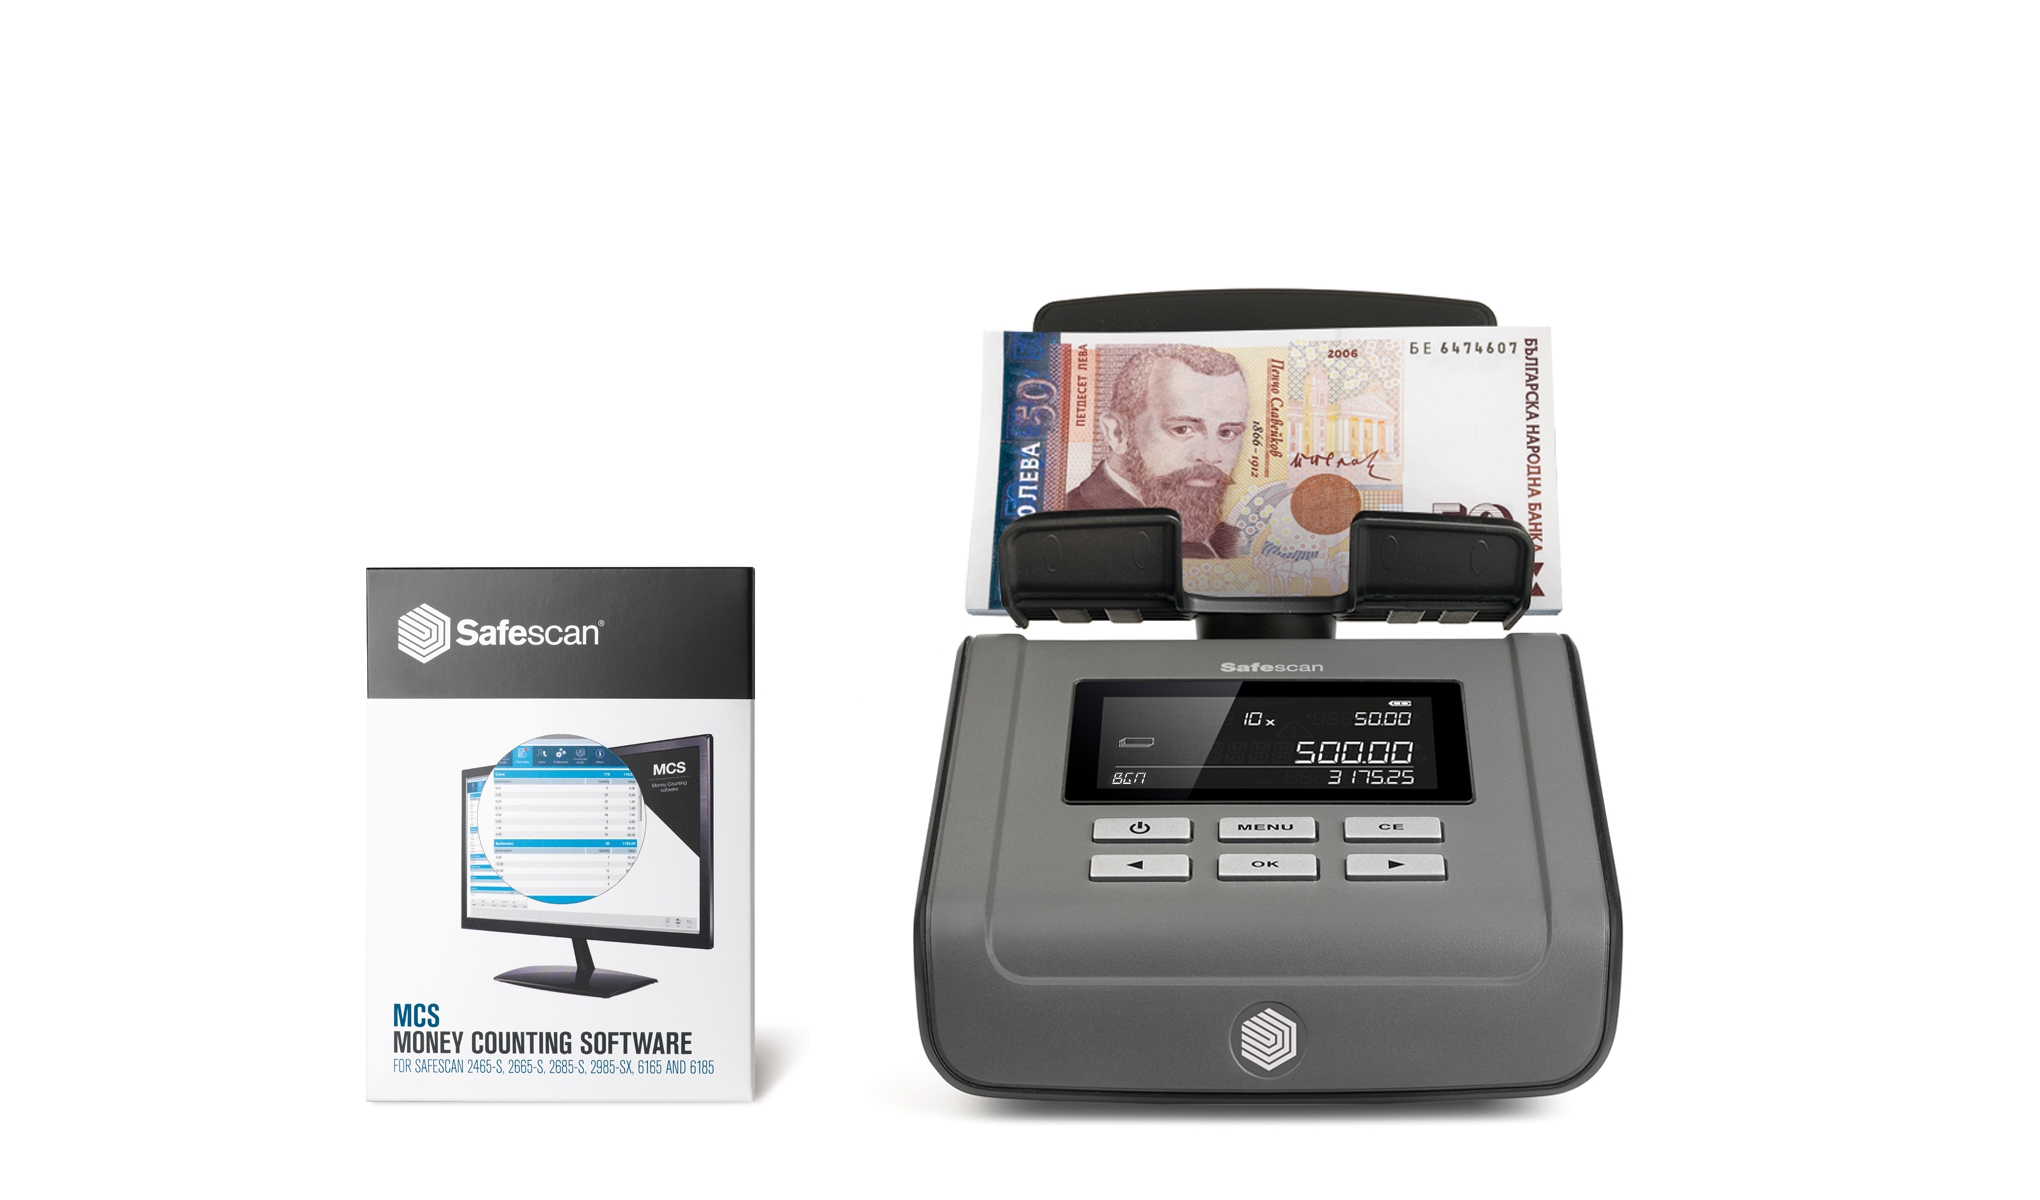 safescan-6165-money-counting-scale